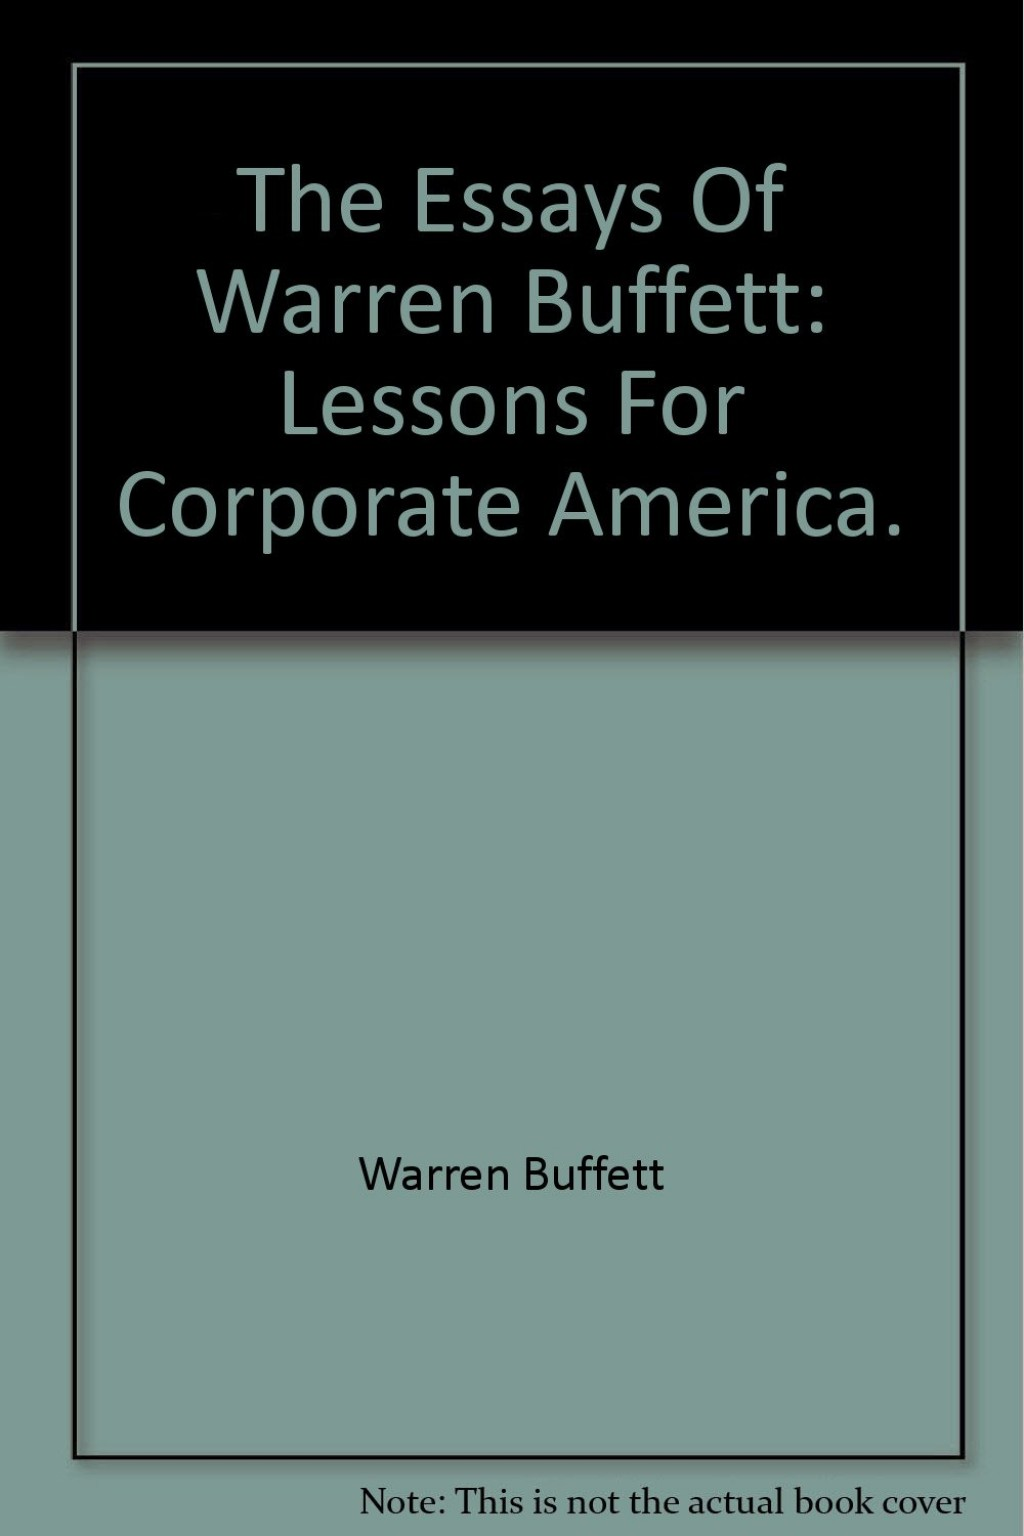 015 The Essays Of Warren Buffett 61wo12biiixl Essay Stirring Pages Audiobook Download Summary Large